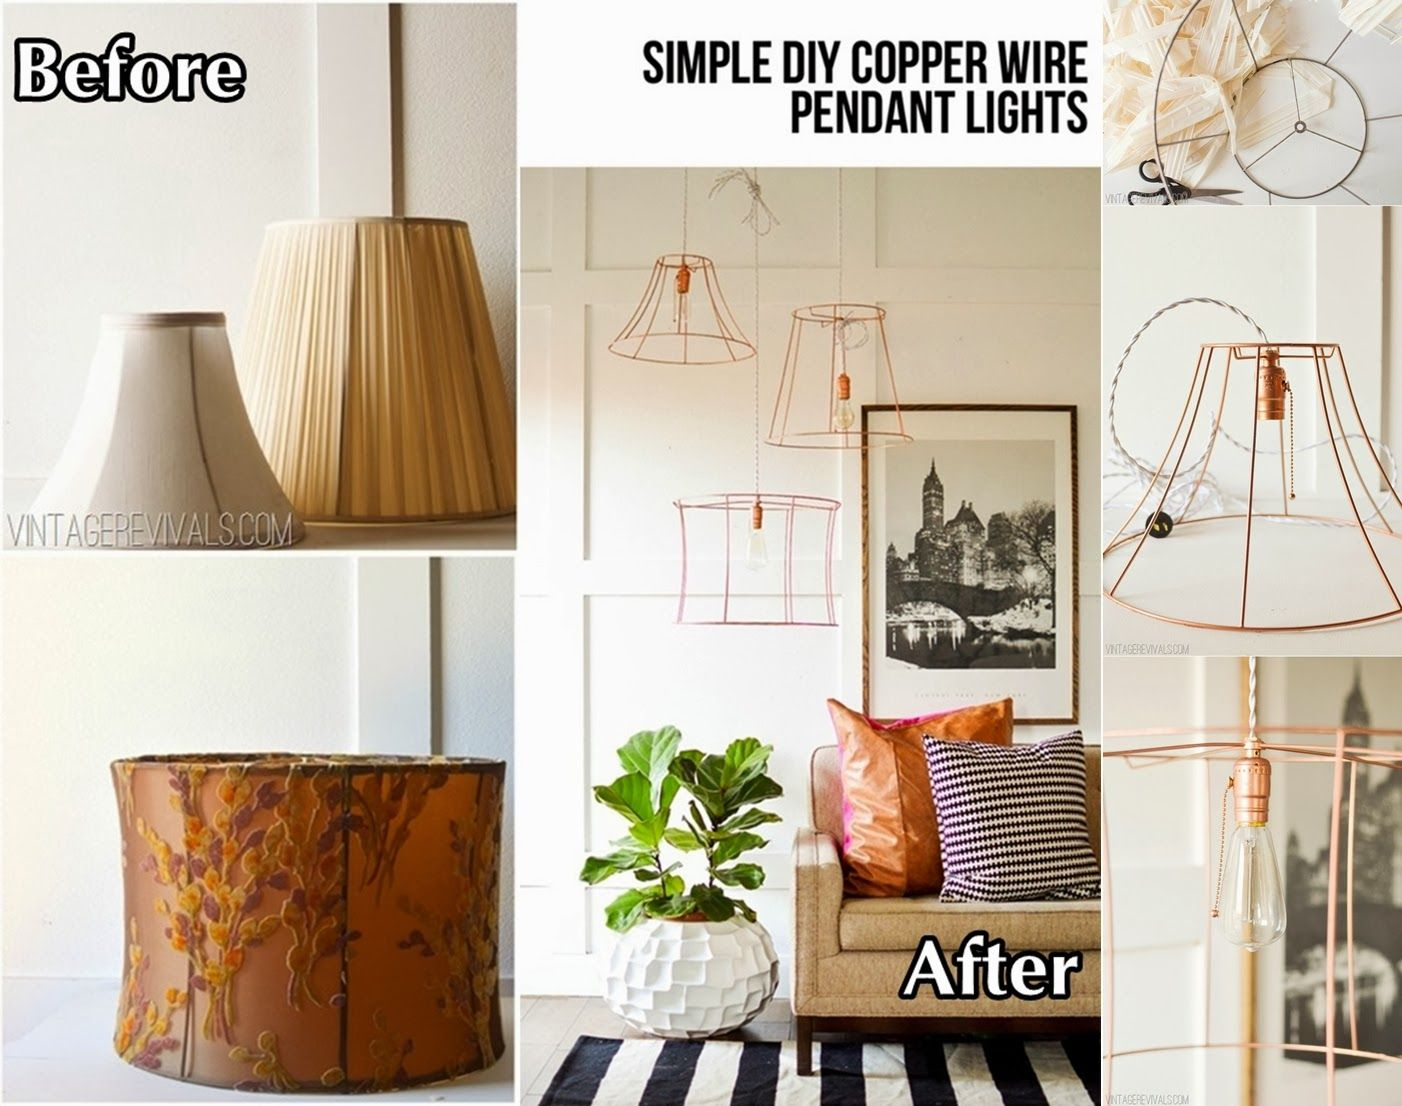 Diy light projects upcycled copper wire pendant lights from diy light projects upcycled copper wire pendant lights from lampshades greentooth Image collections